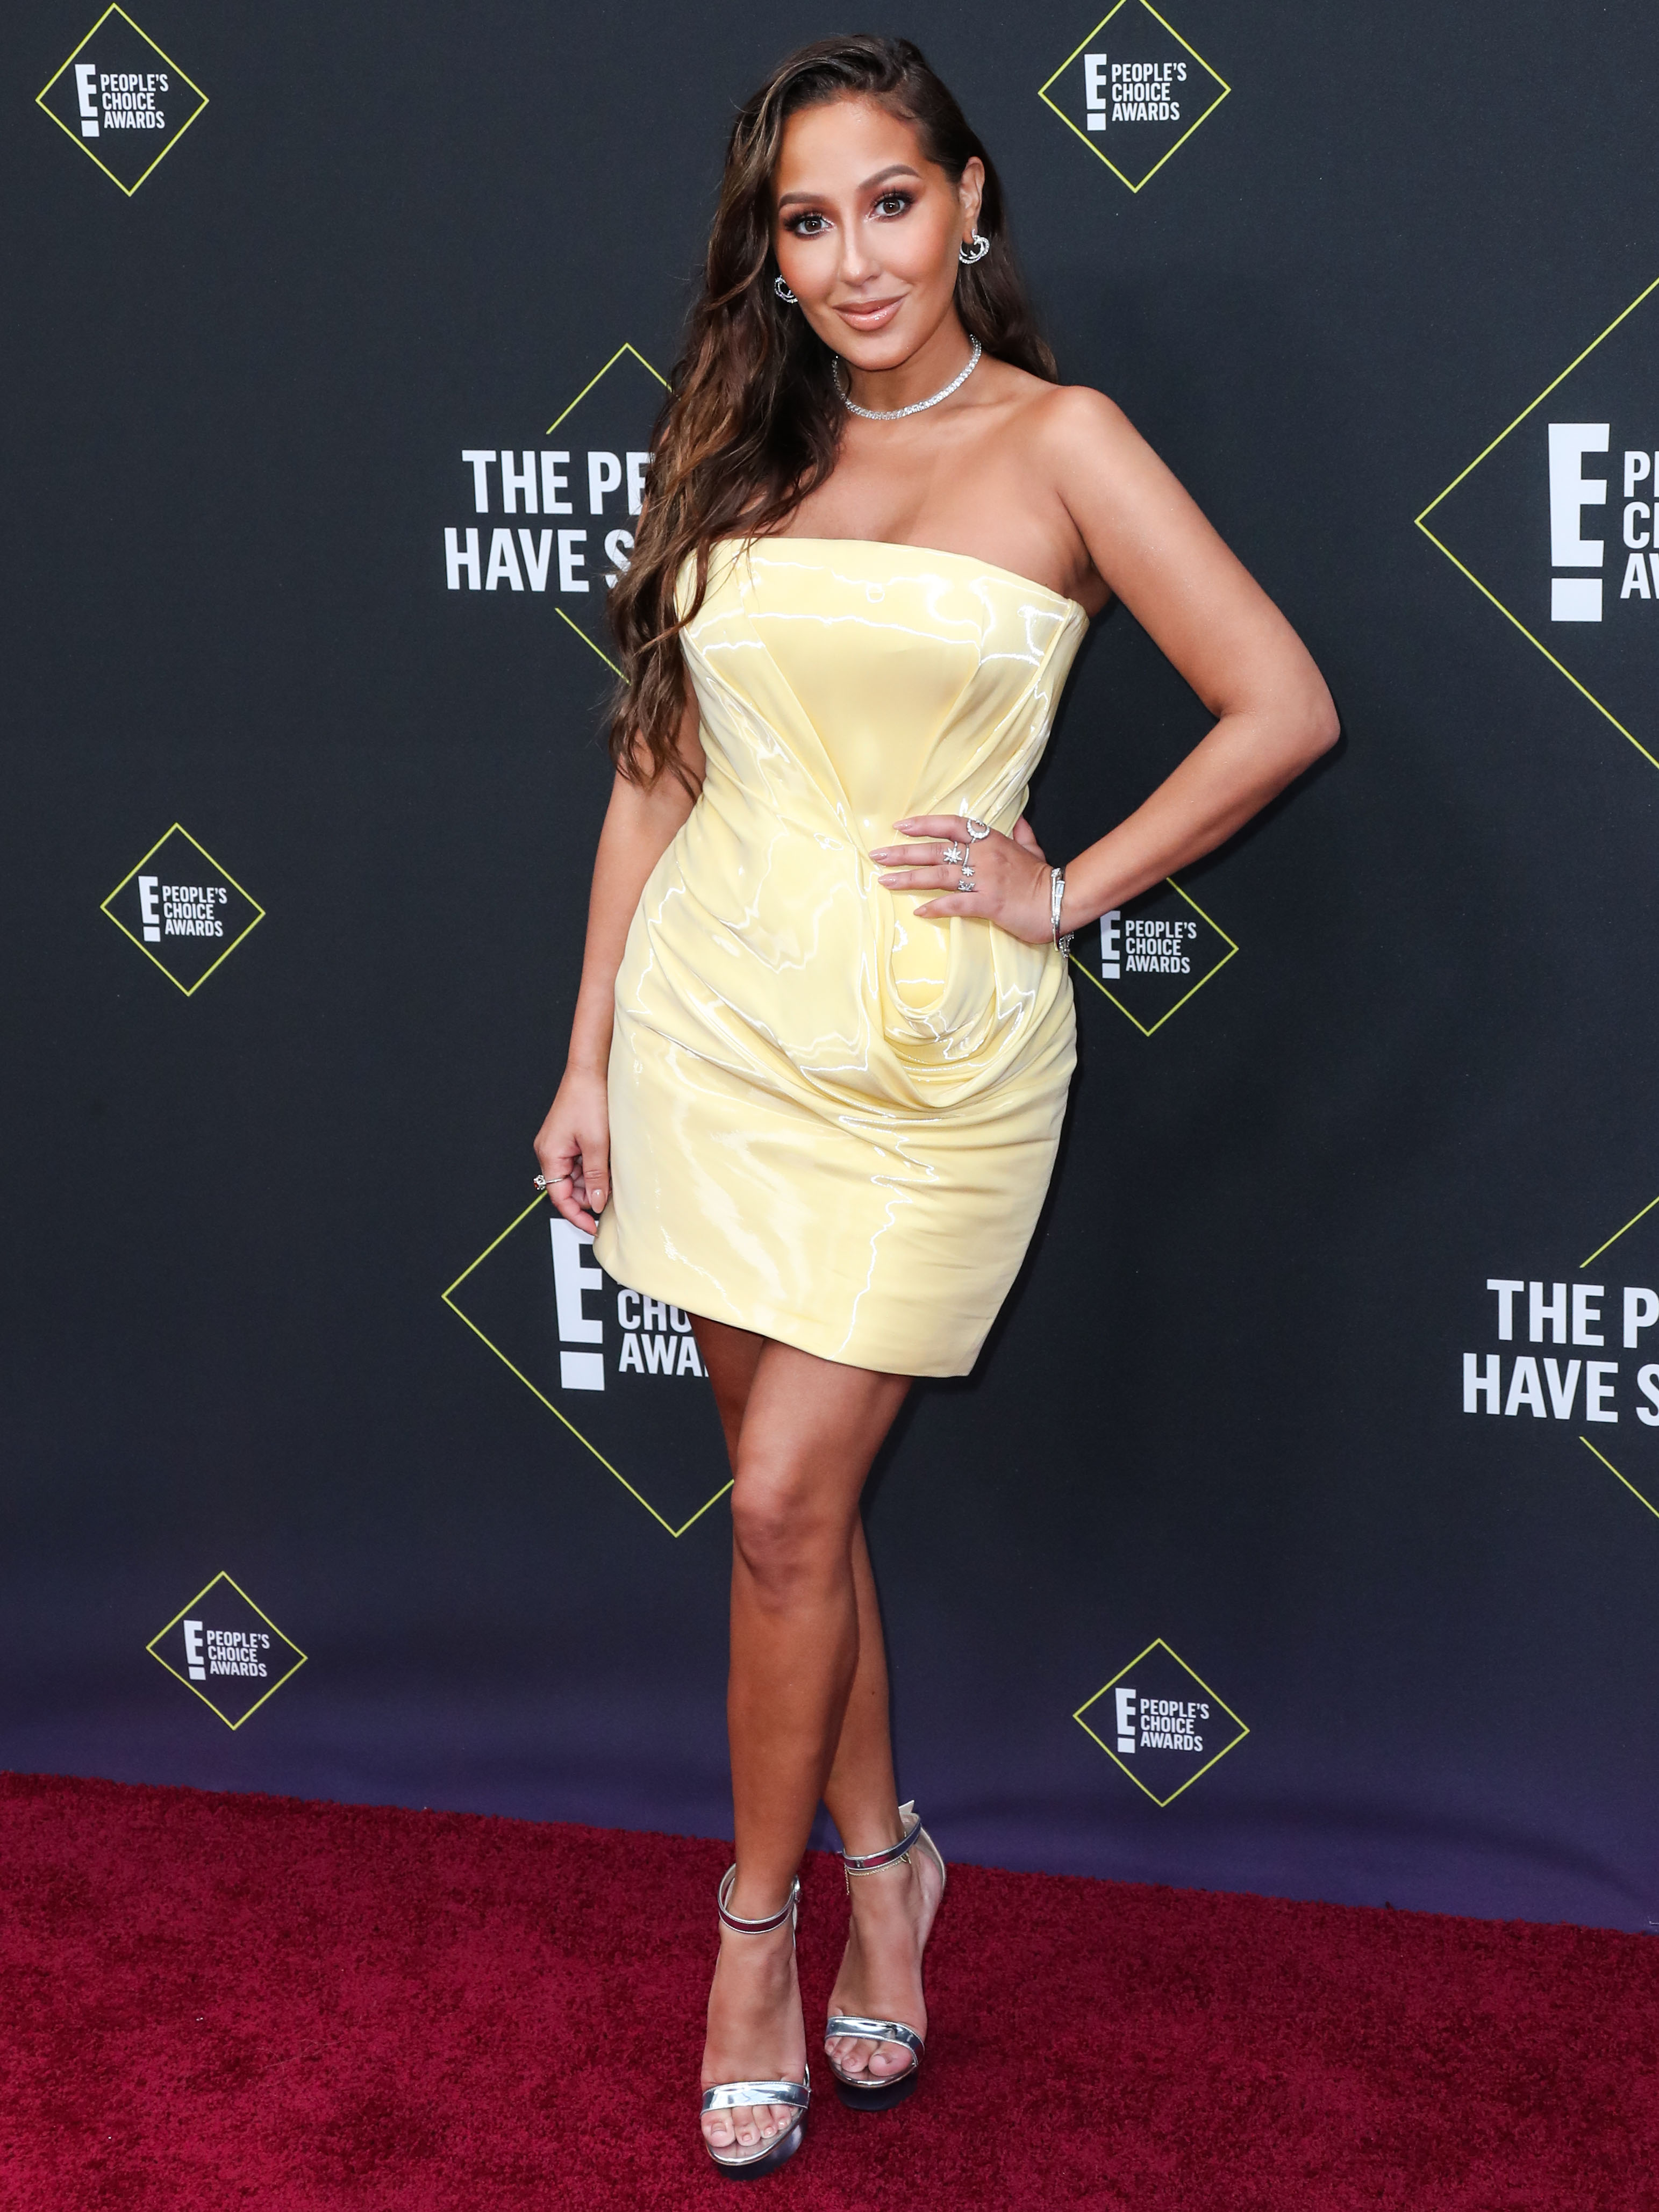 Adrienne Bailon Houghton arrives at the 2019 E! People's Choice Awards held at Barker Hangar on November 10, 2019 in Santa Monica, Los Angeles, California, United States.